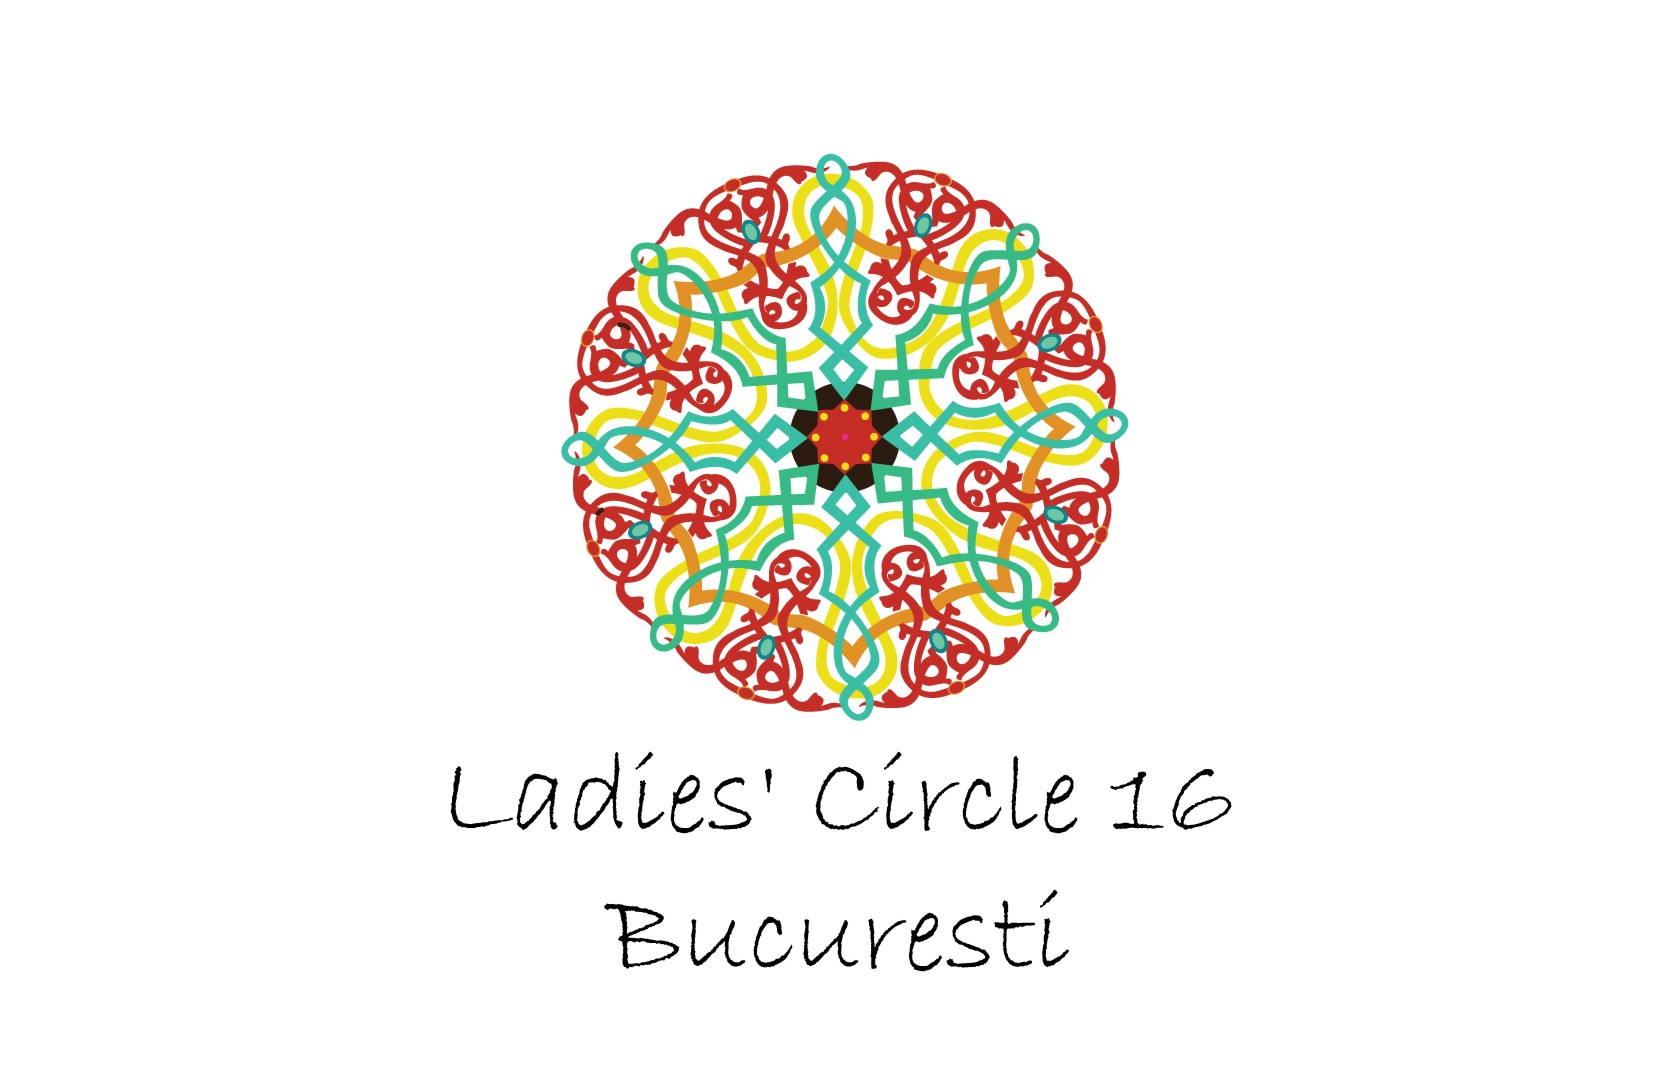 Ladies Circle Nr. 16 Bucuresti logo